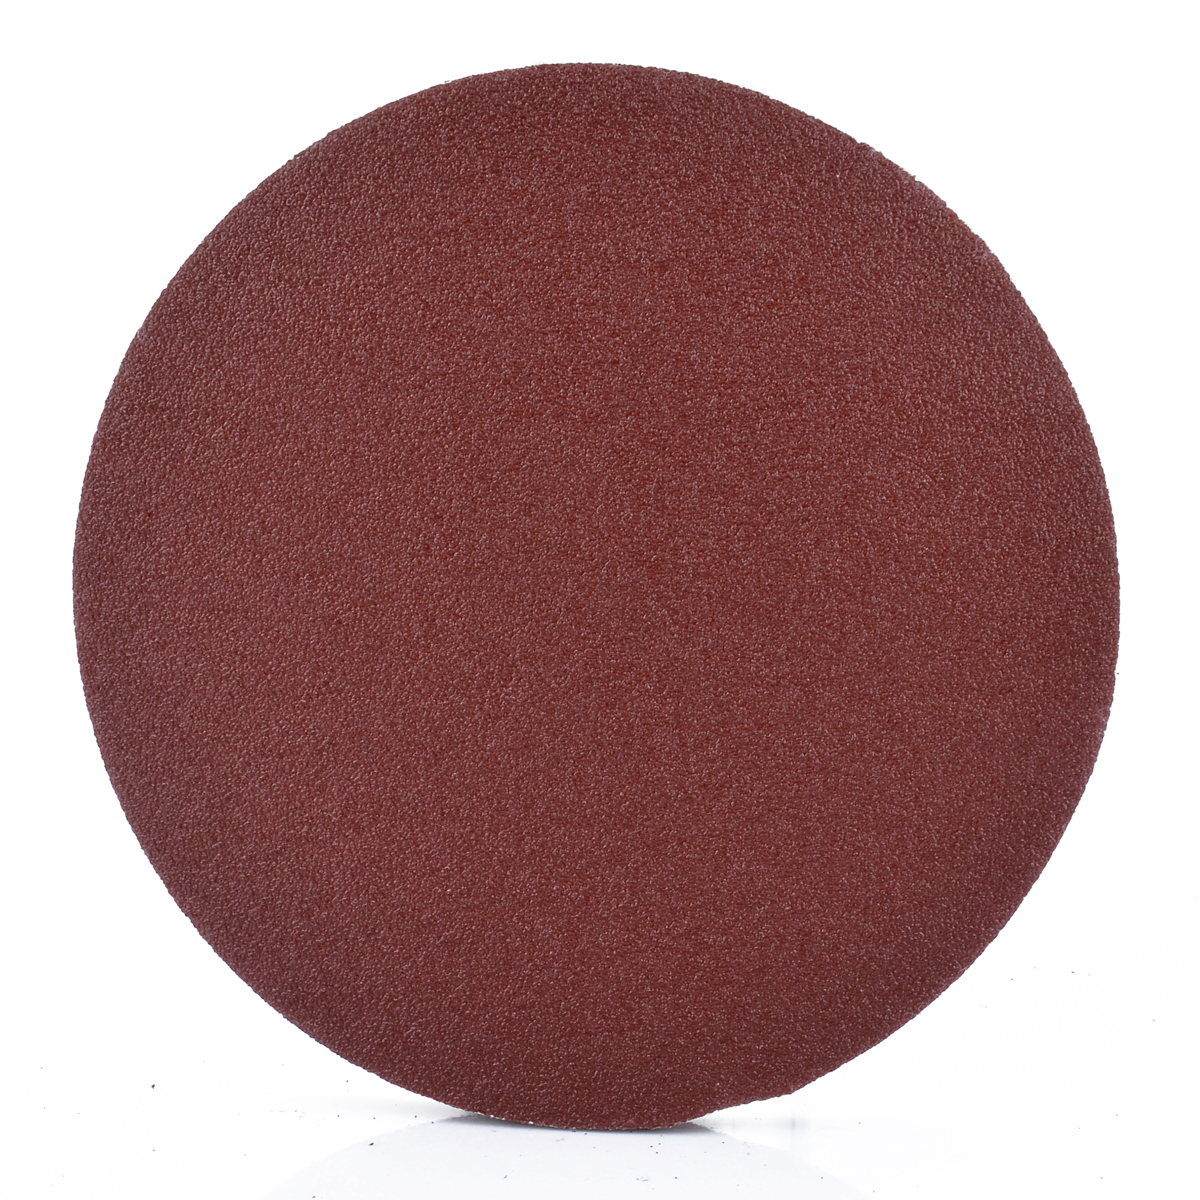 30Pcs 6 Inch Self Adhesive Sanding Disk 80/180/320 Grit Sanding Disc Stick On Sandpaper Peel For Polishing Abrasive Rotary Tools